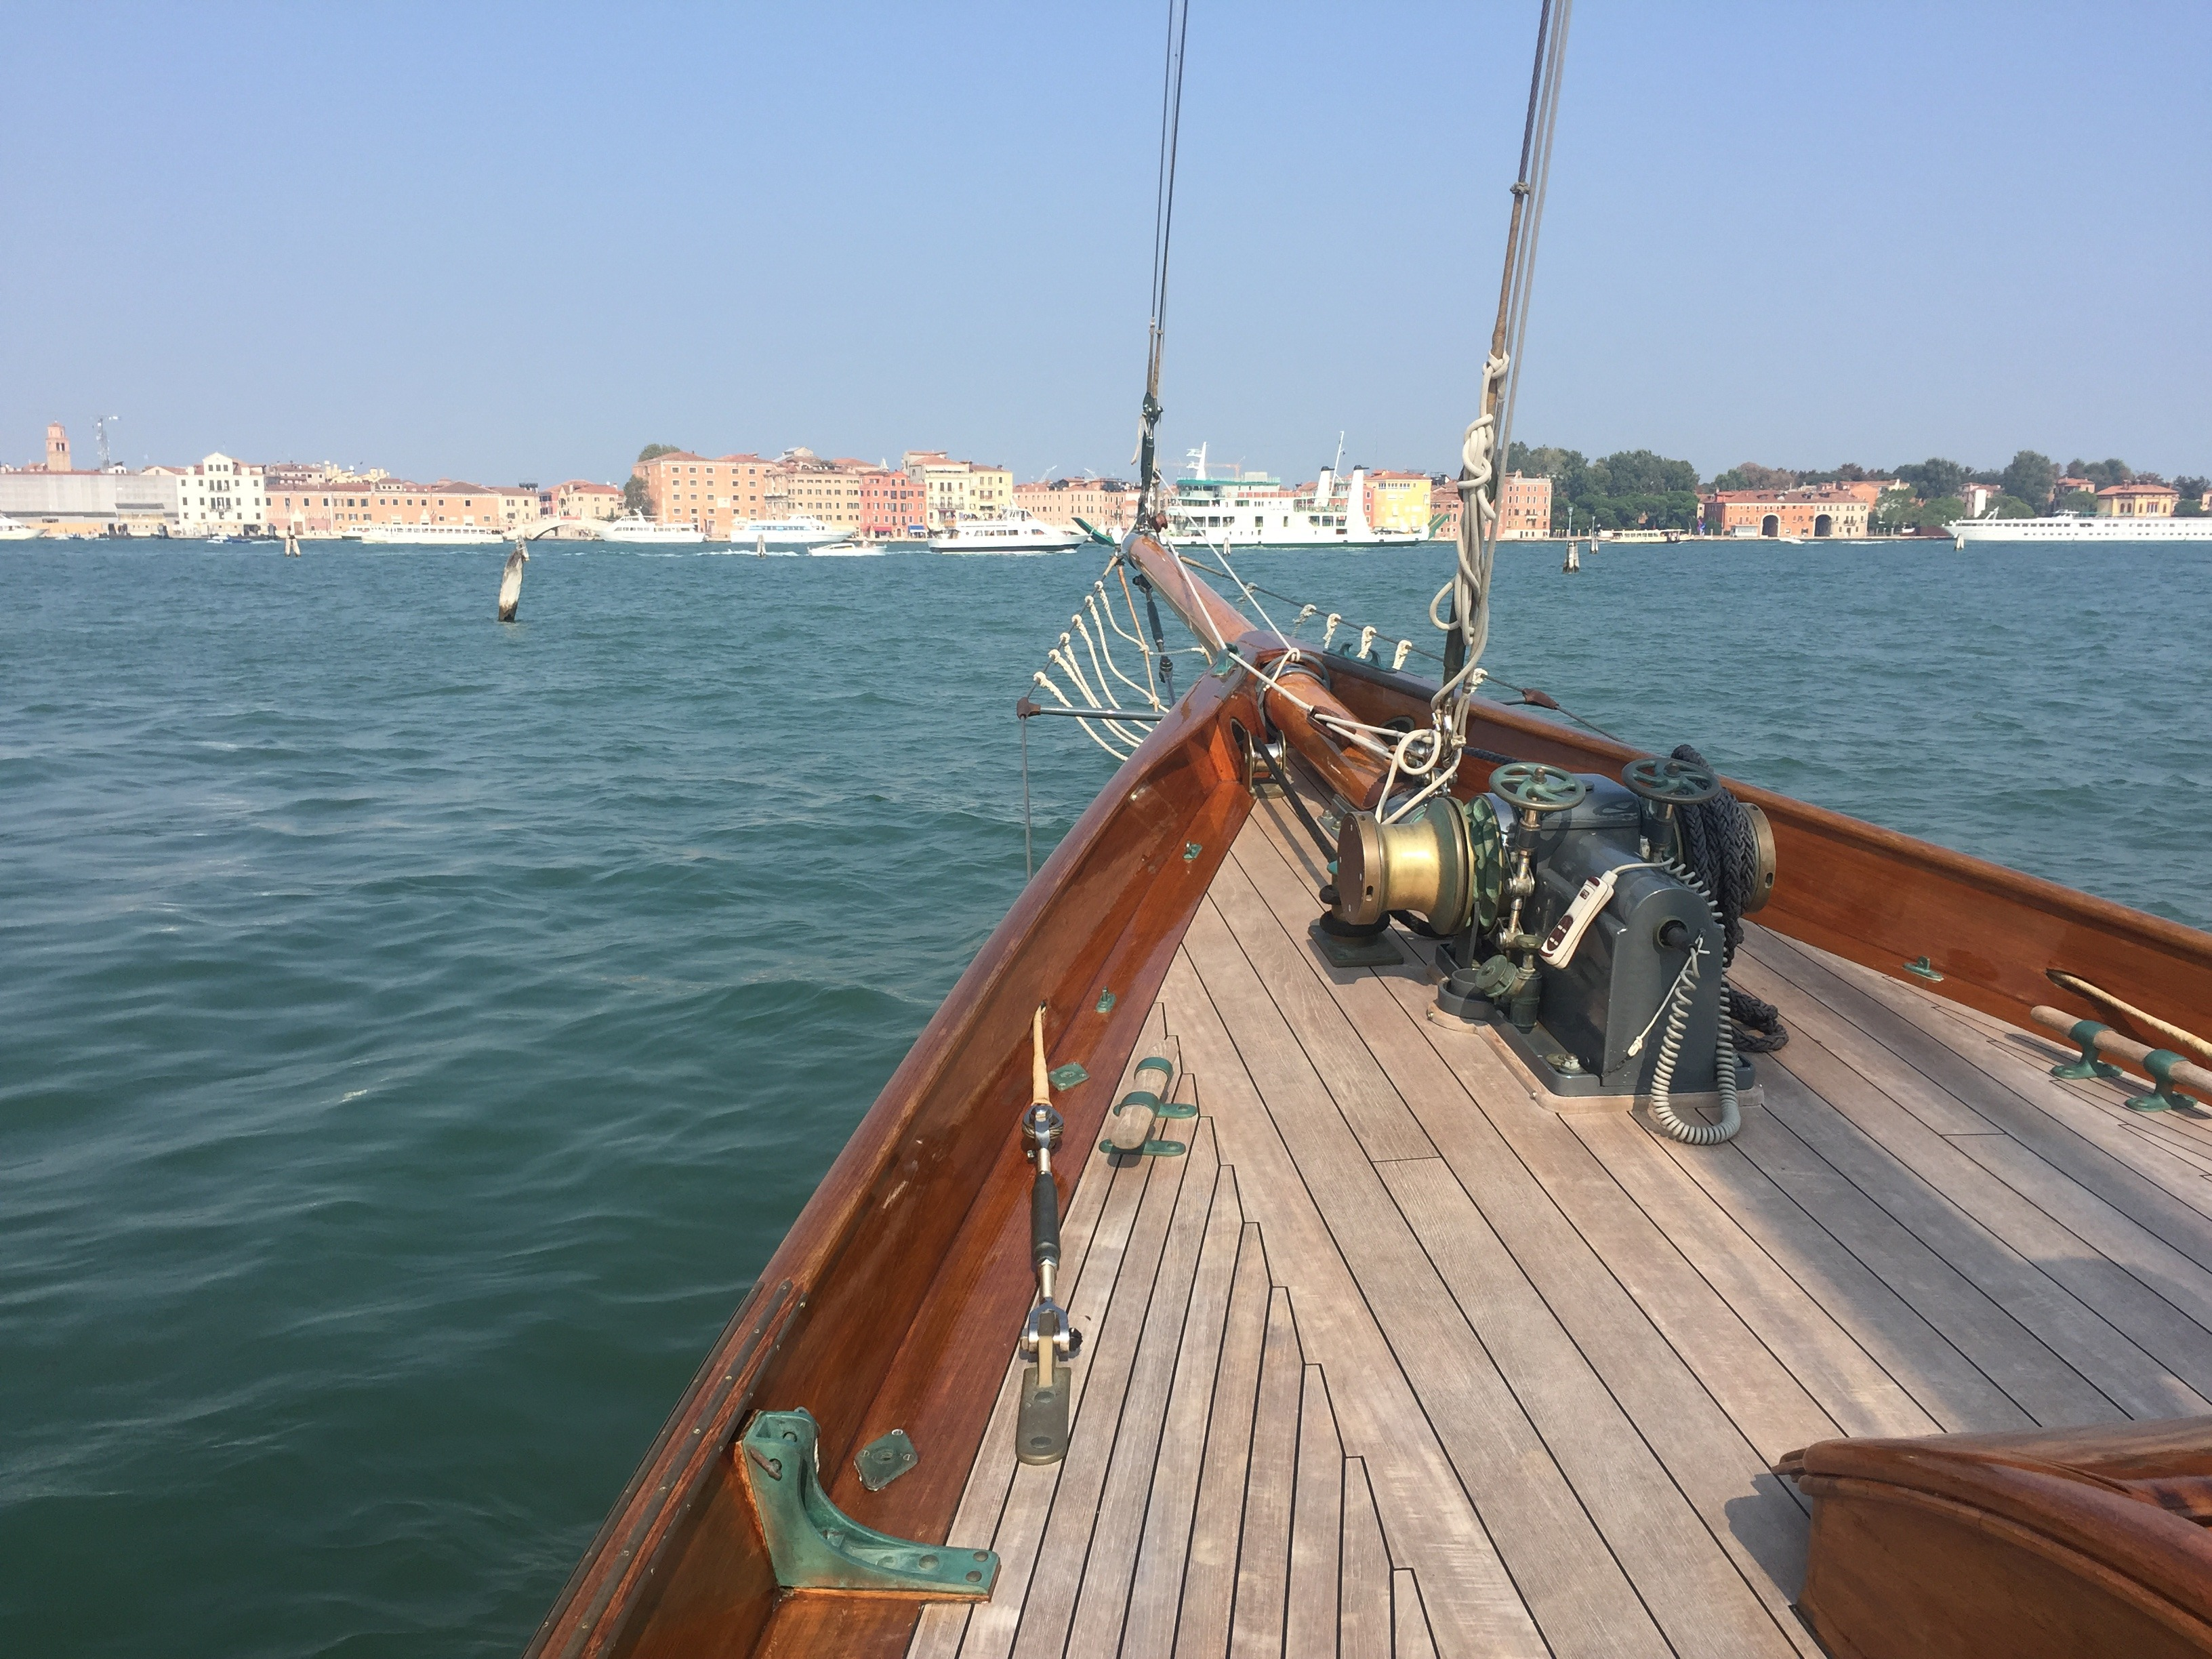 Fully restored by a team of master artisans commissioned by Panerai, Eilean sits at its mooring on San Giorgio